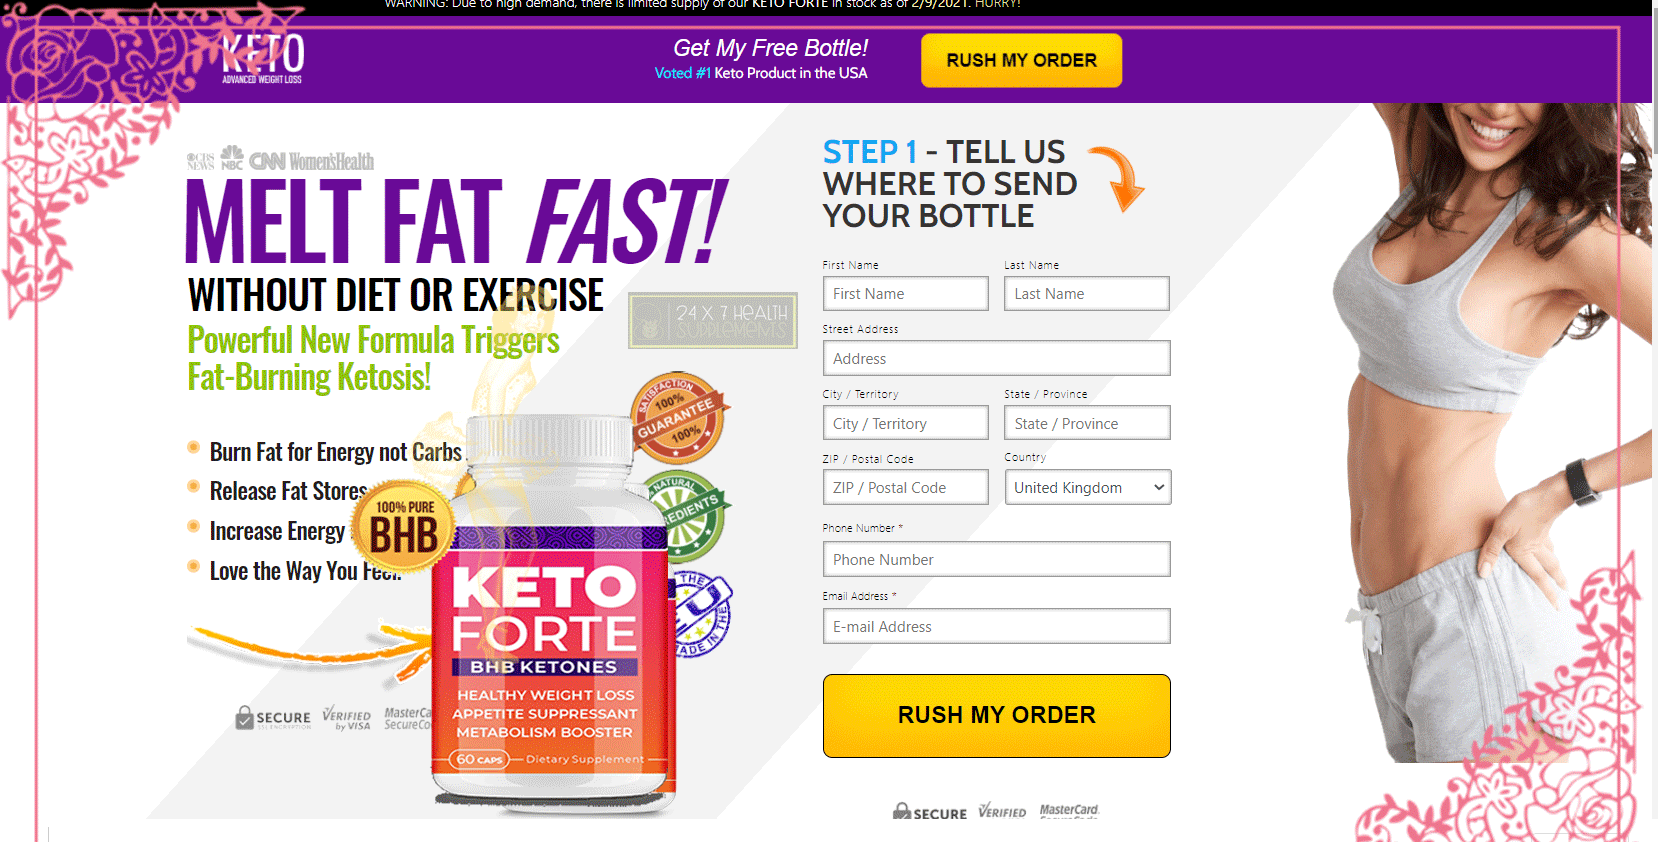 Keto-Forte-BHB-Ingredients5